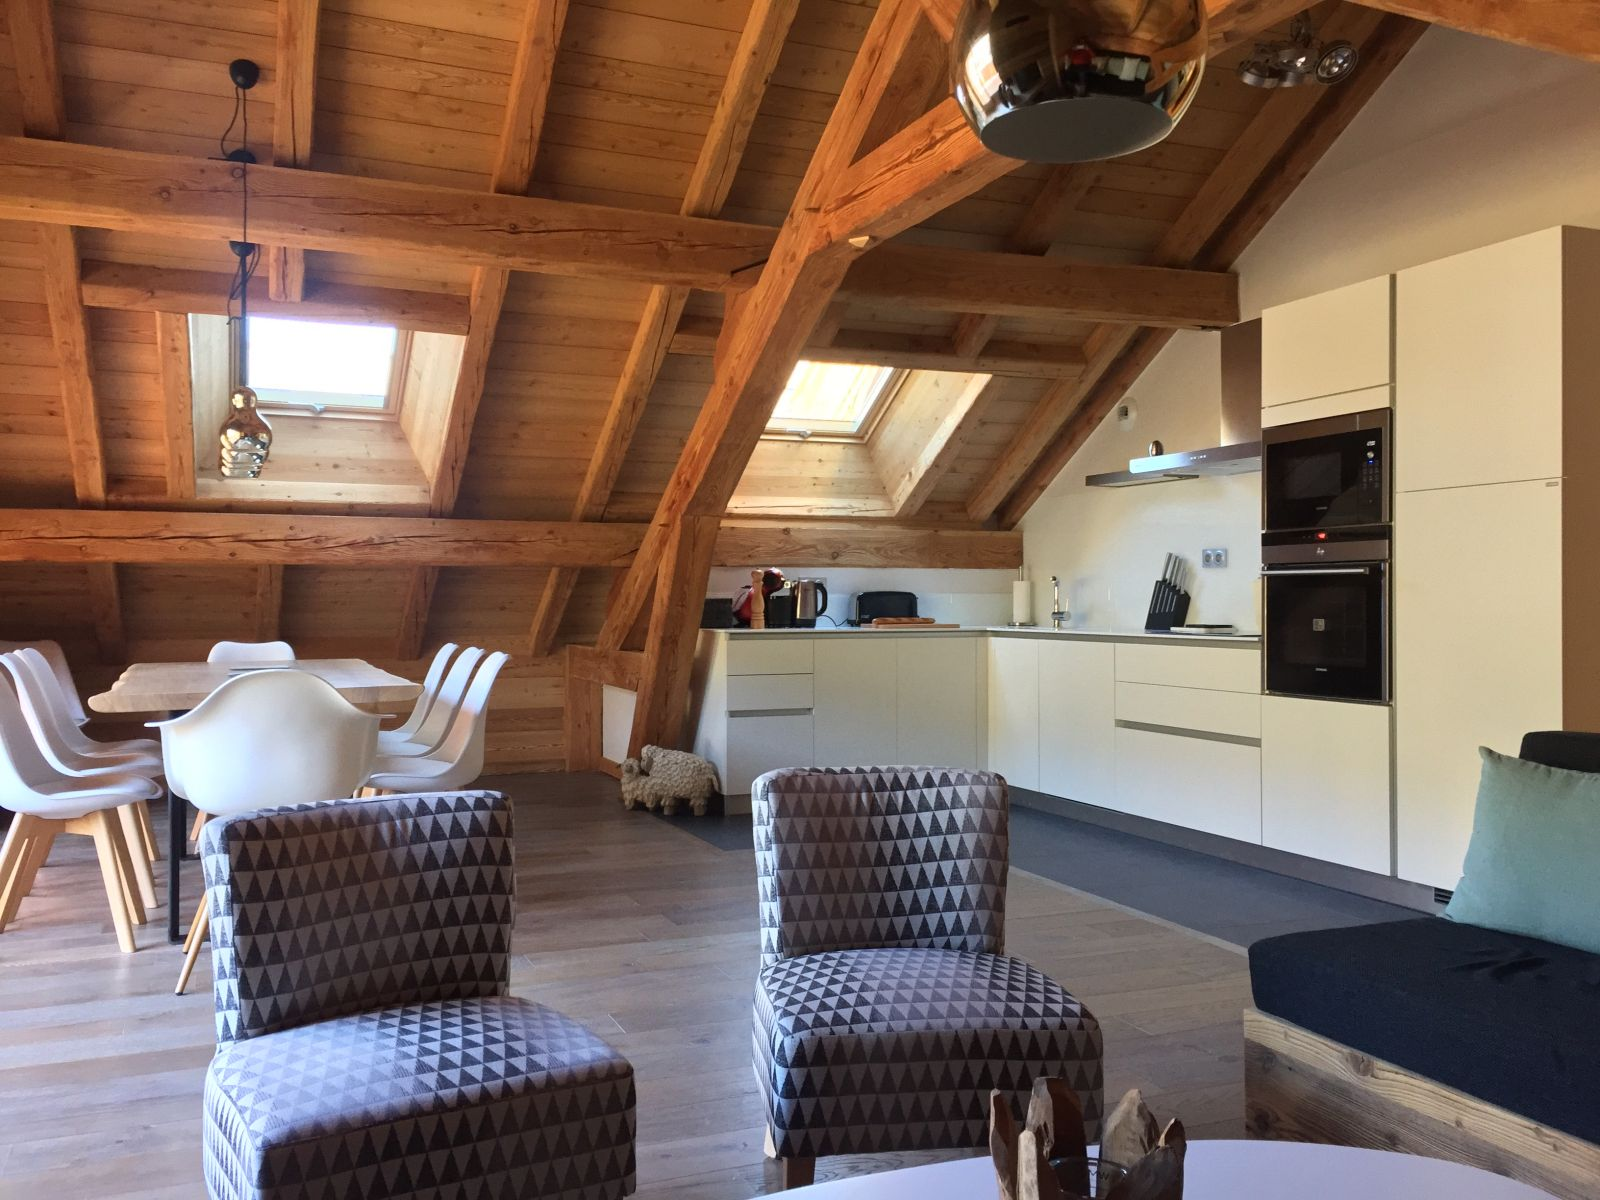 Location appartement luxe serre chevalier pied des pistes for Appartement luxe